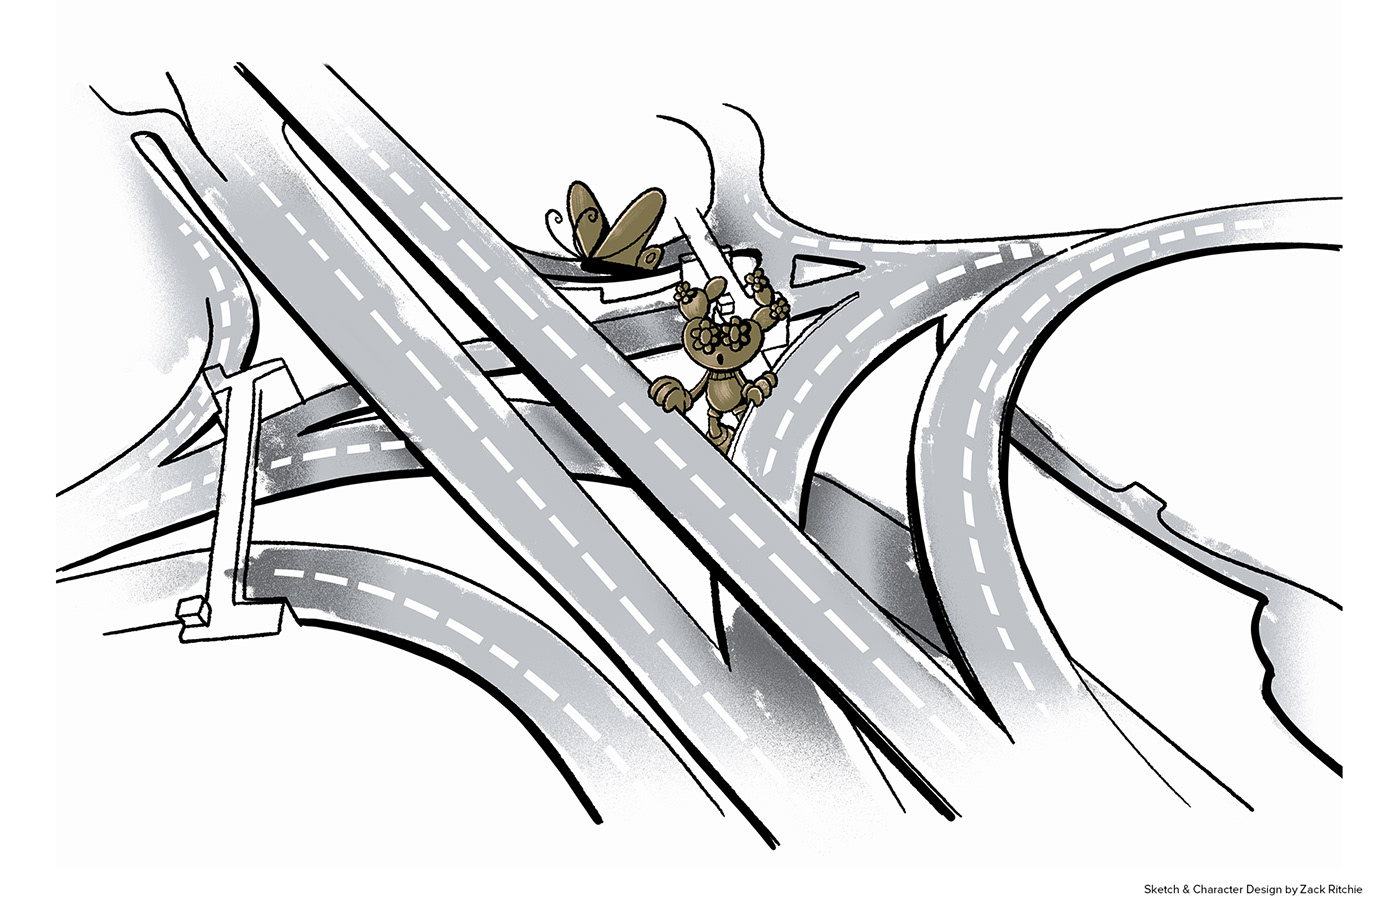 A sketch of a Cactus exploring the urban street junction of Marsa.